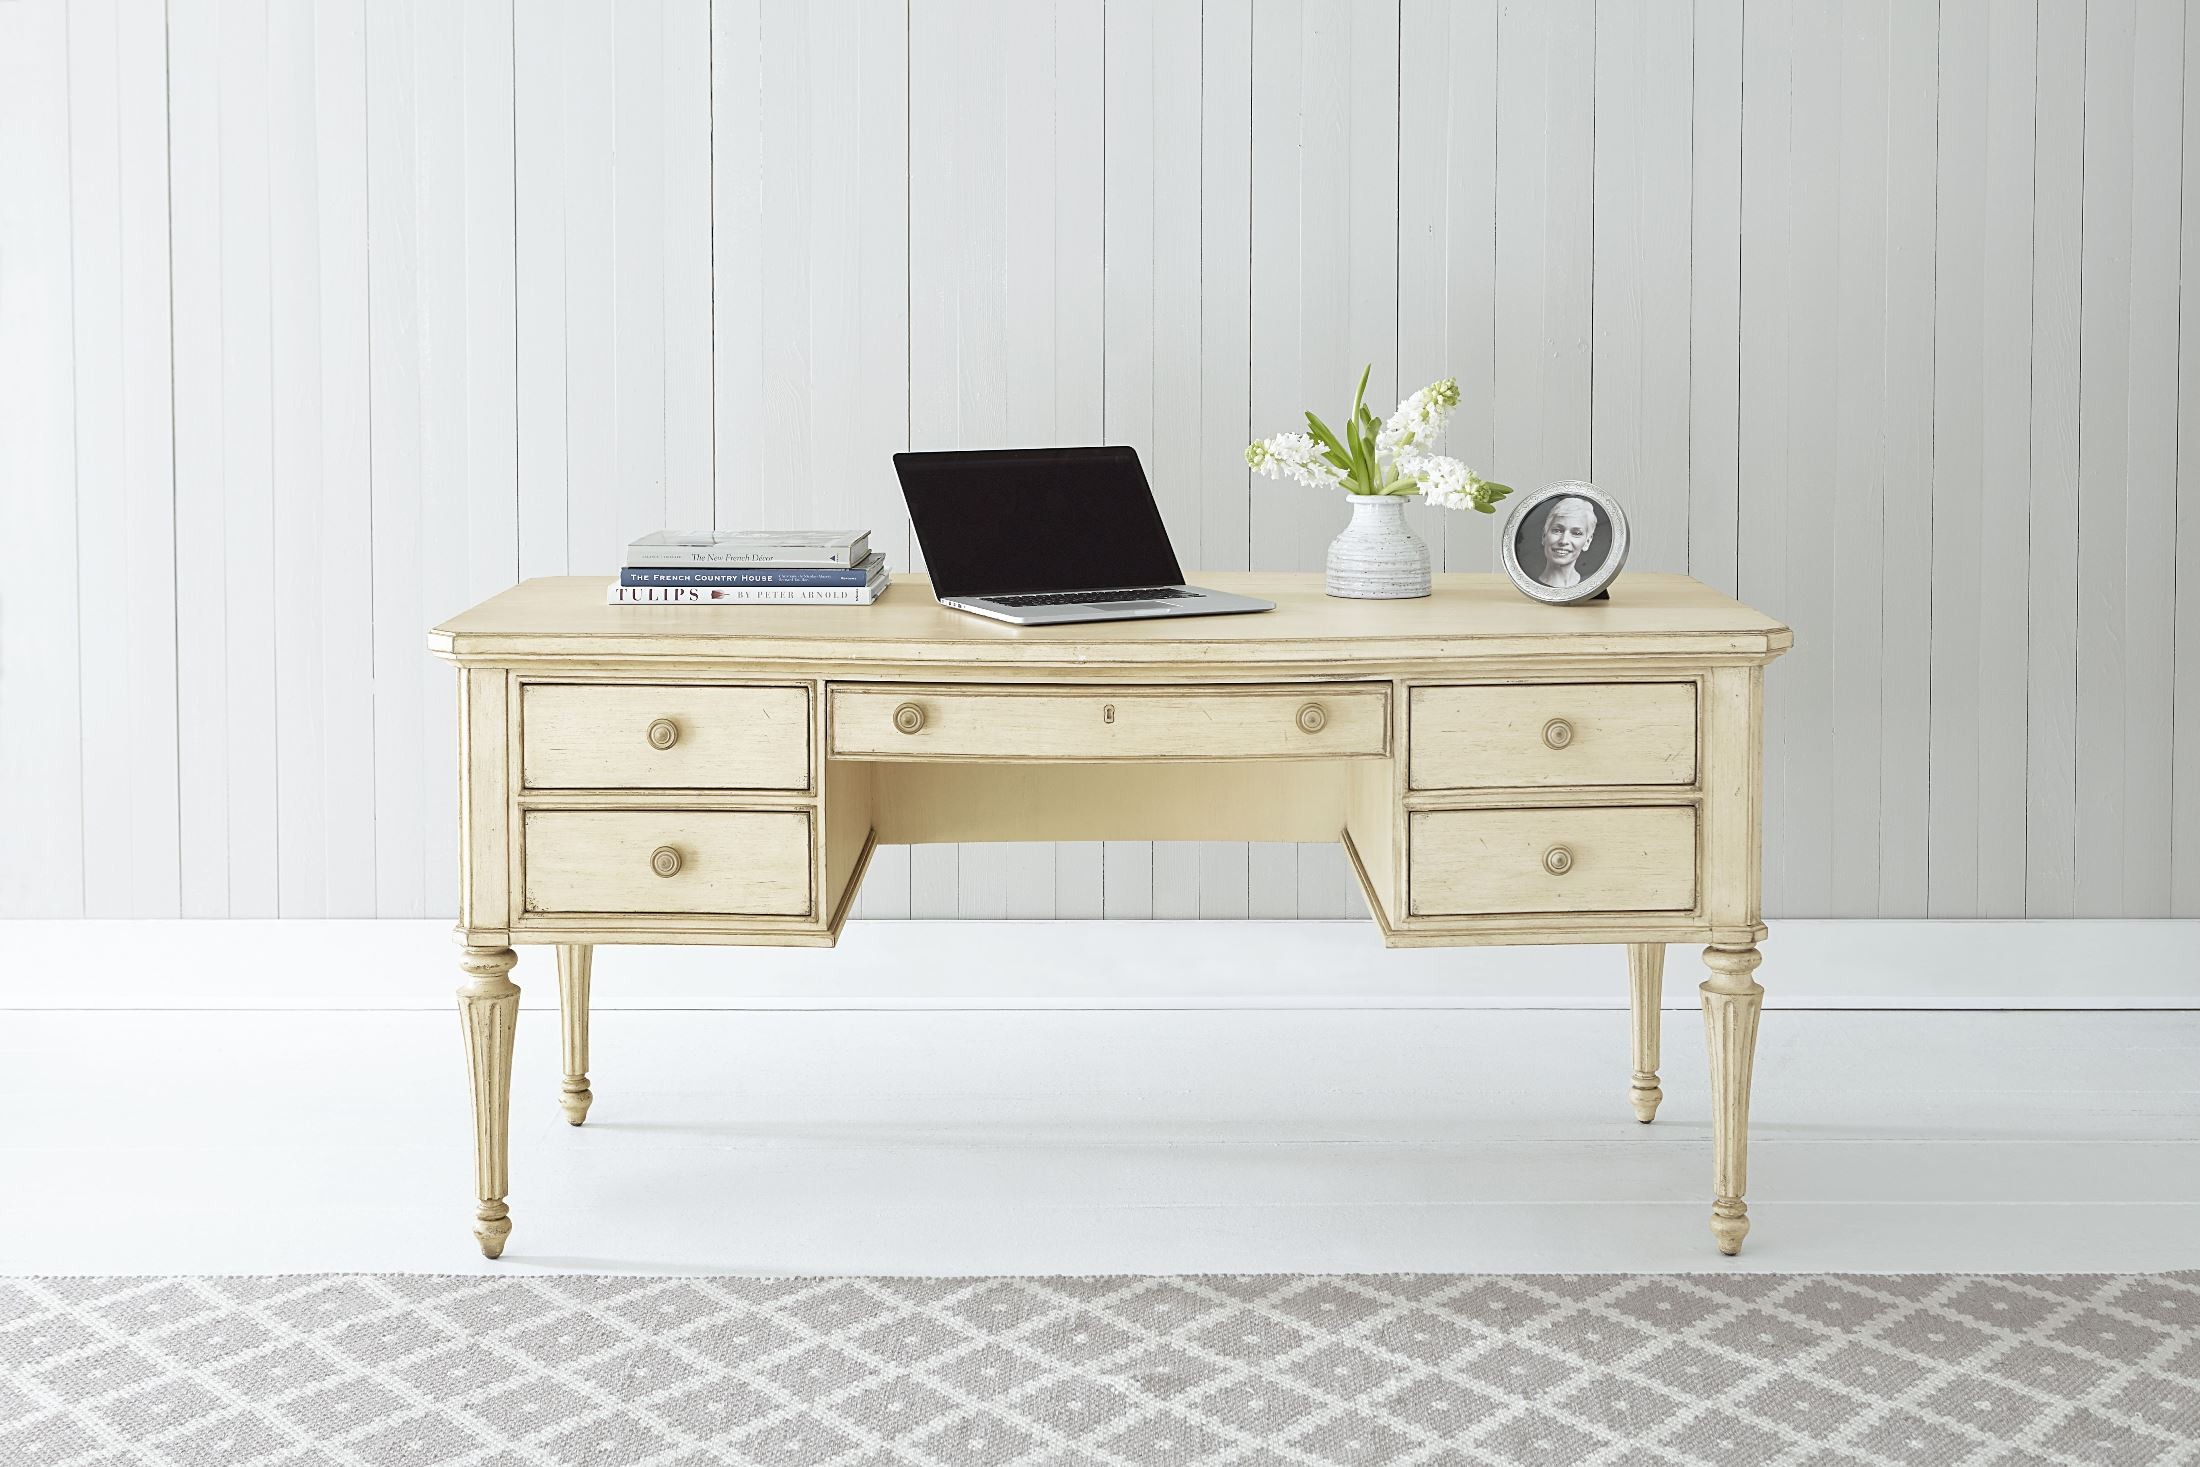 cottage writing desk Boston interiors | bench crafted in maine, the cottage writing desk features tapered legs and may be special ordered in several other painted finishes at the time price.